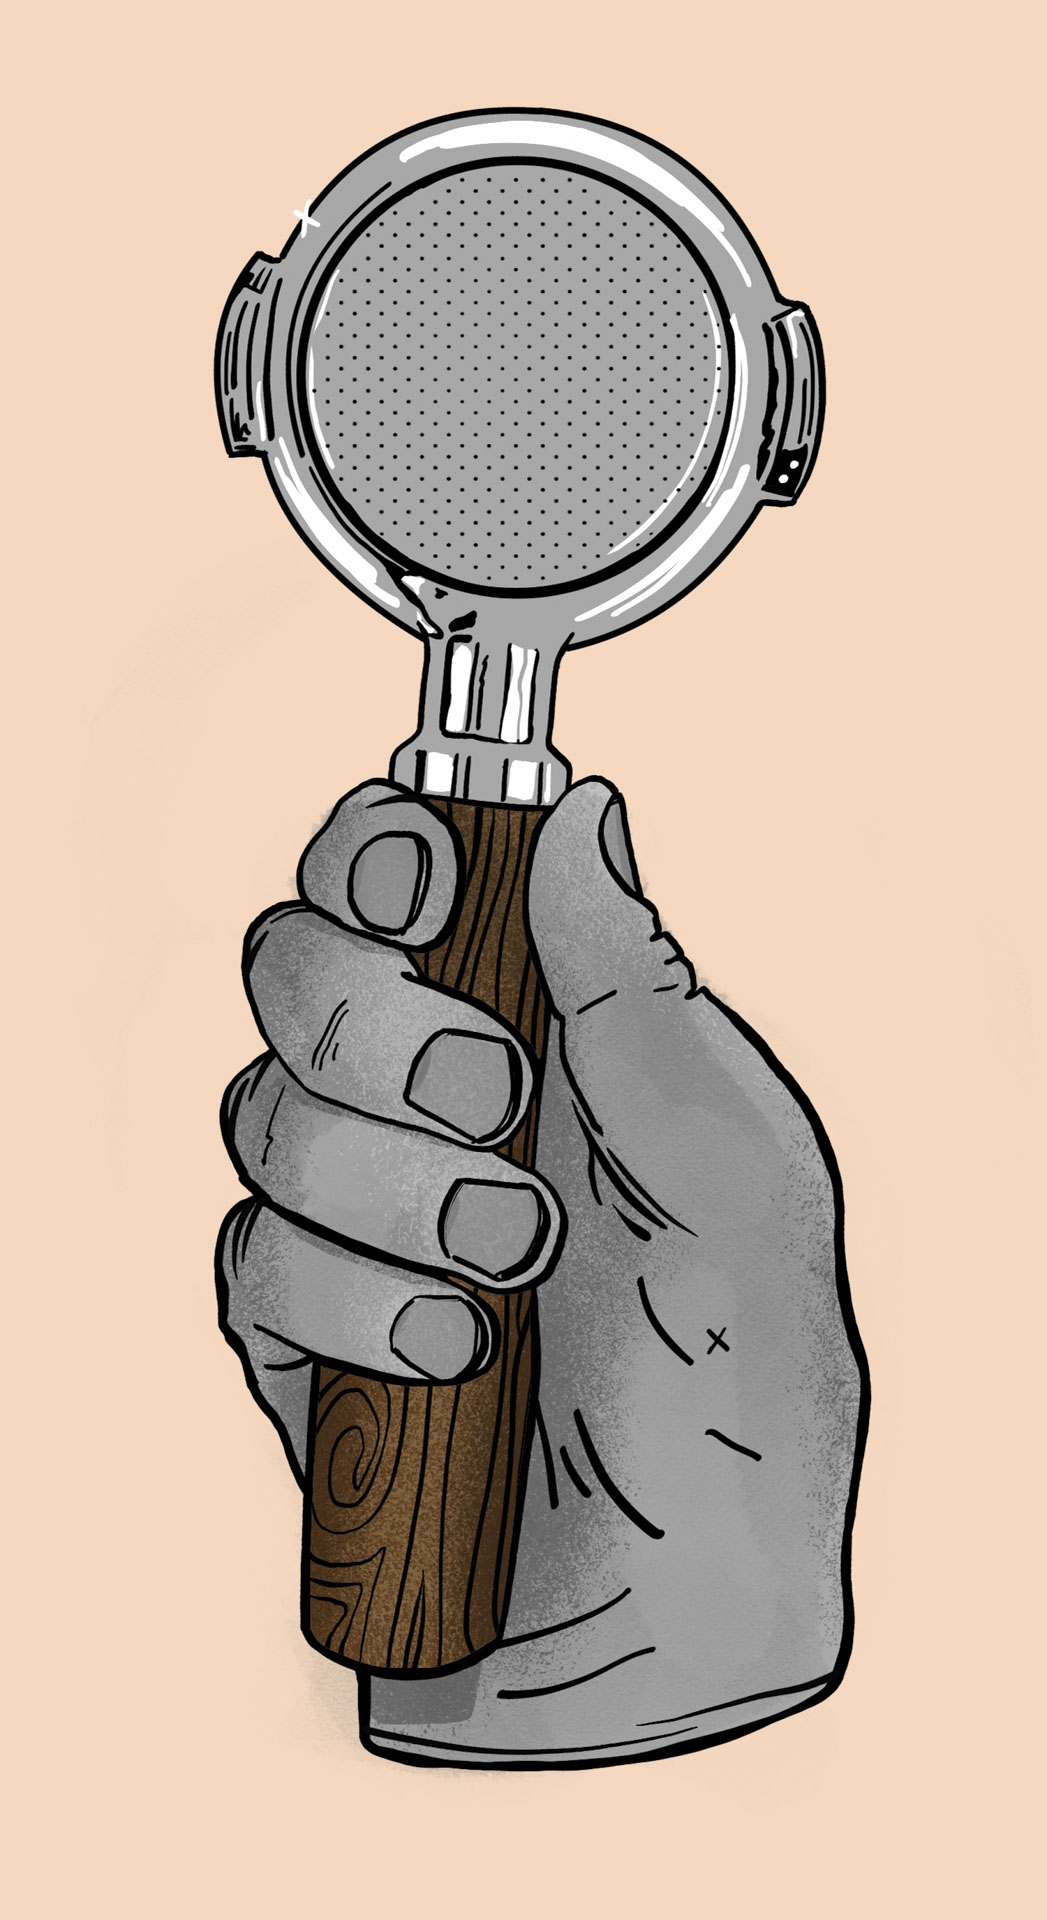 The hand of a barista, holding a portafilter. Illustration from one side of Provision's retail packaging.